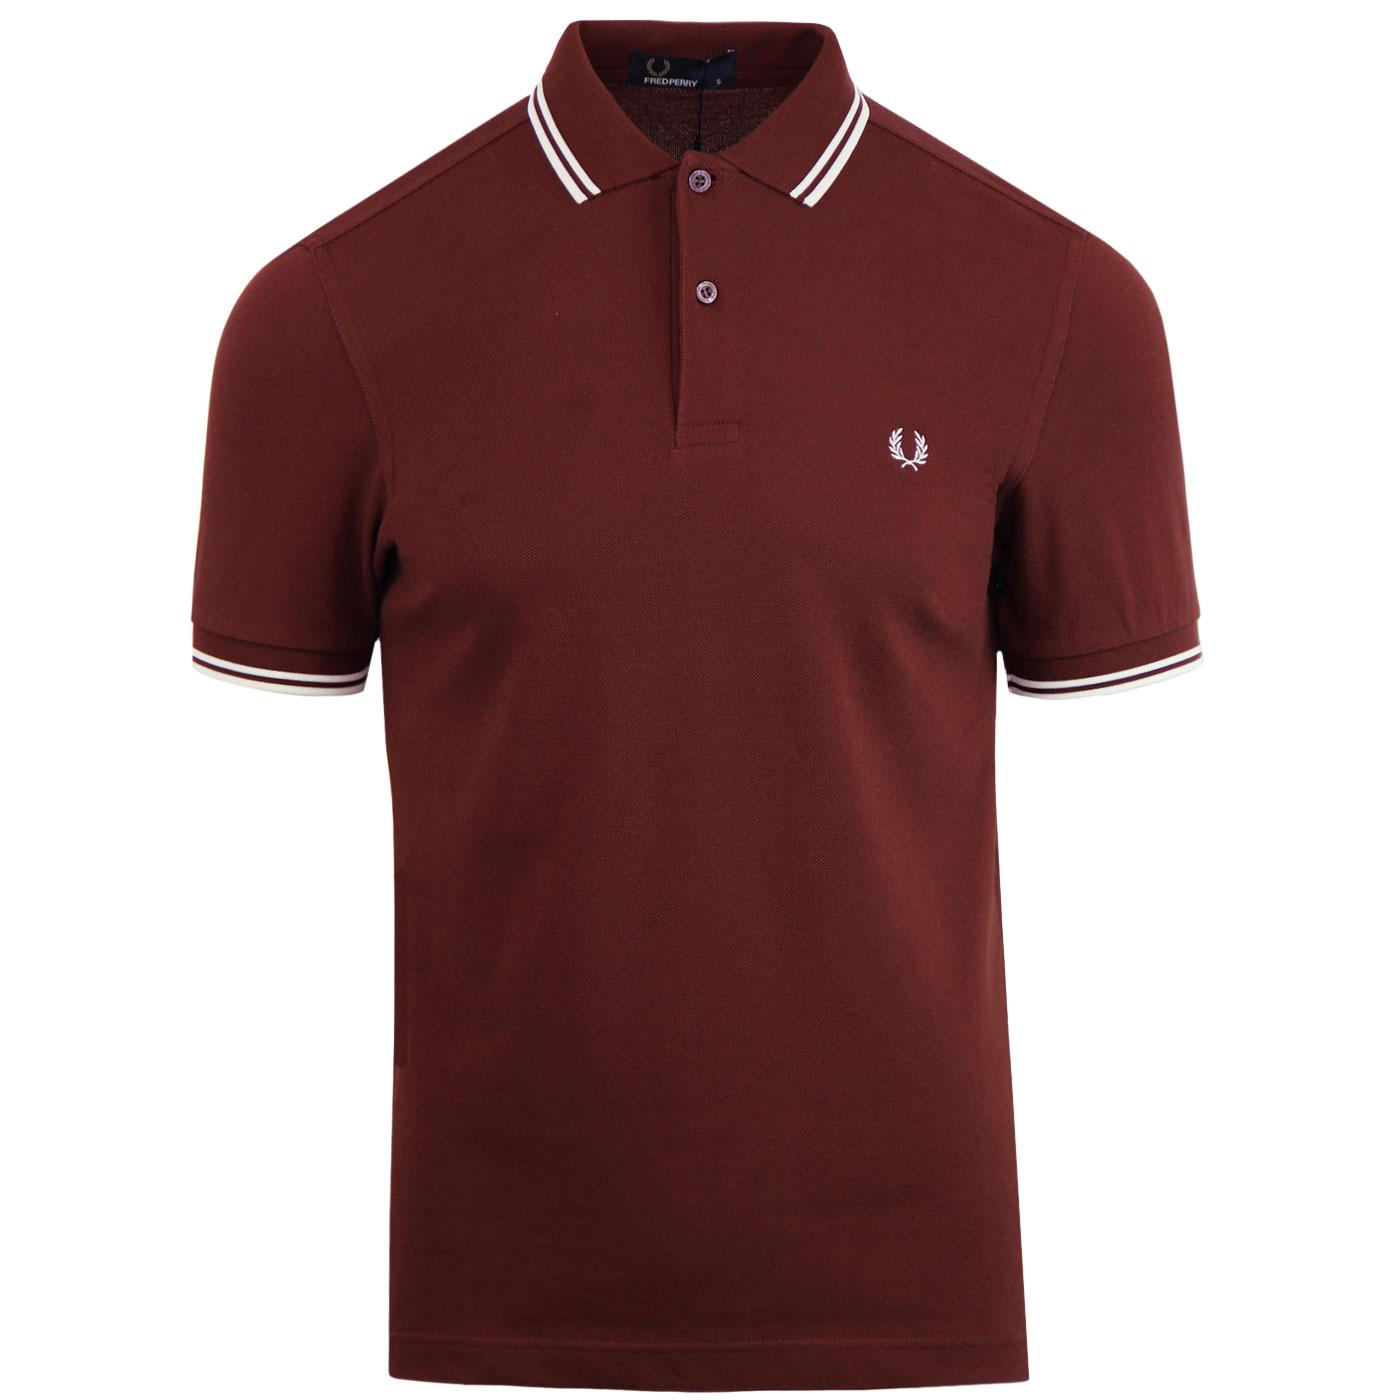 FRED PERRY M3600 Mod Twin Tipped Polo Shirt (SR)